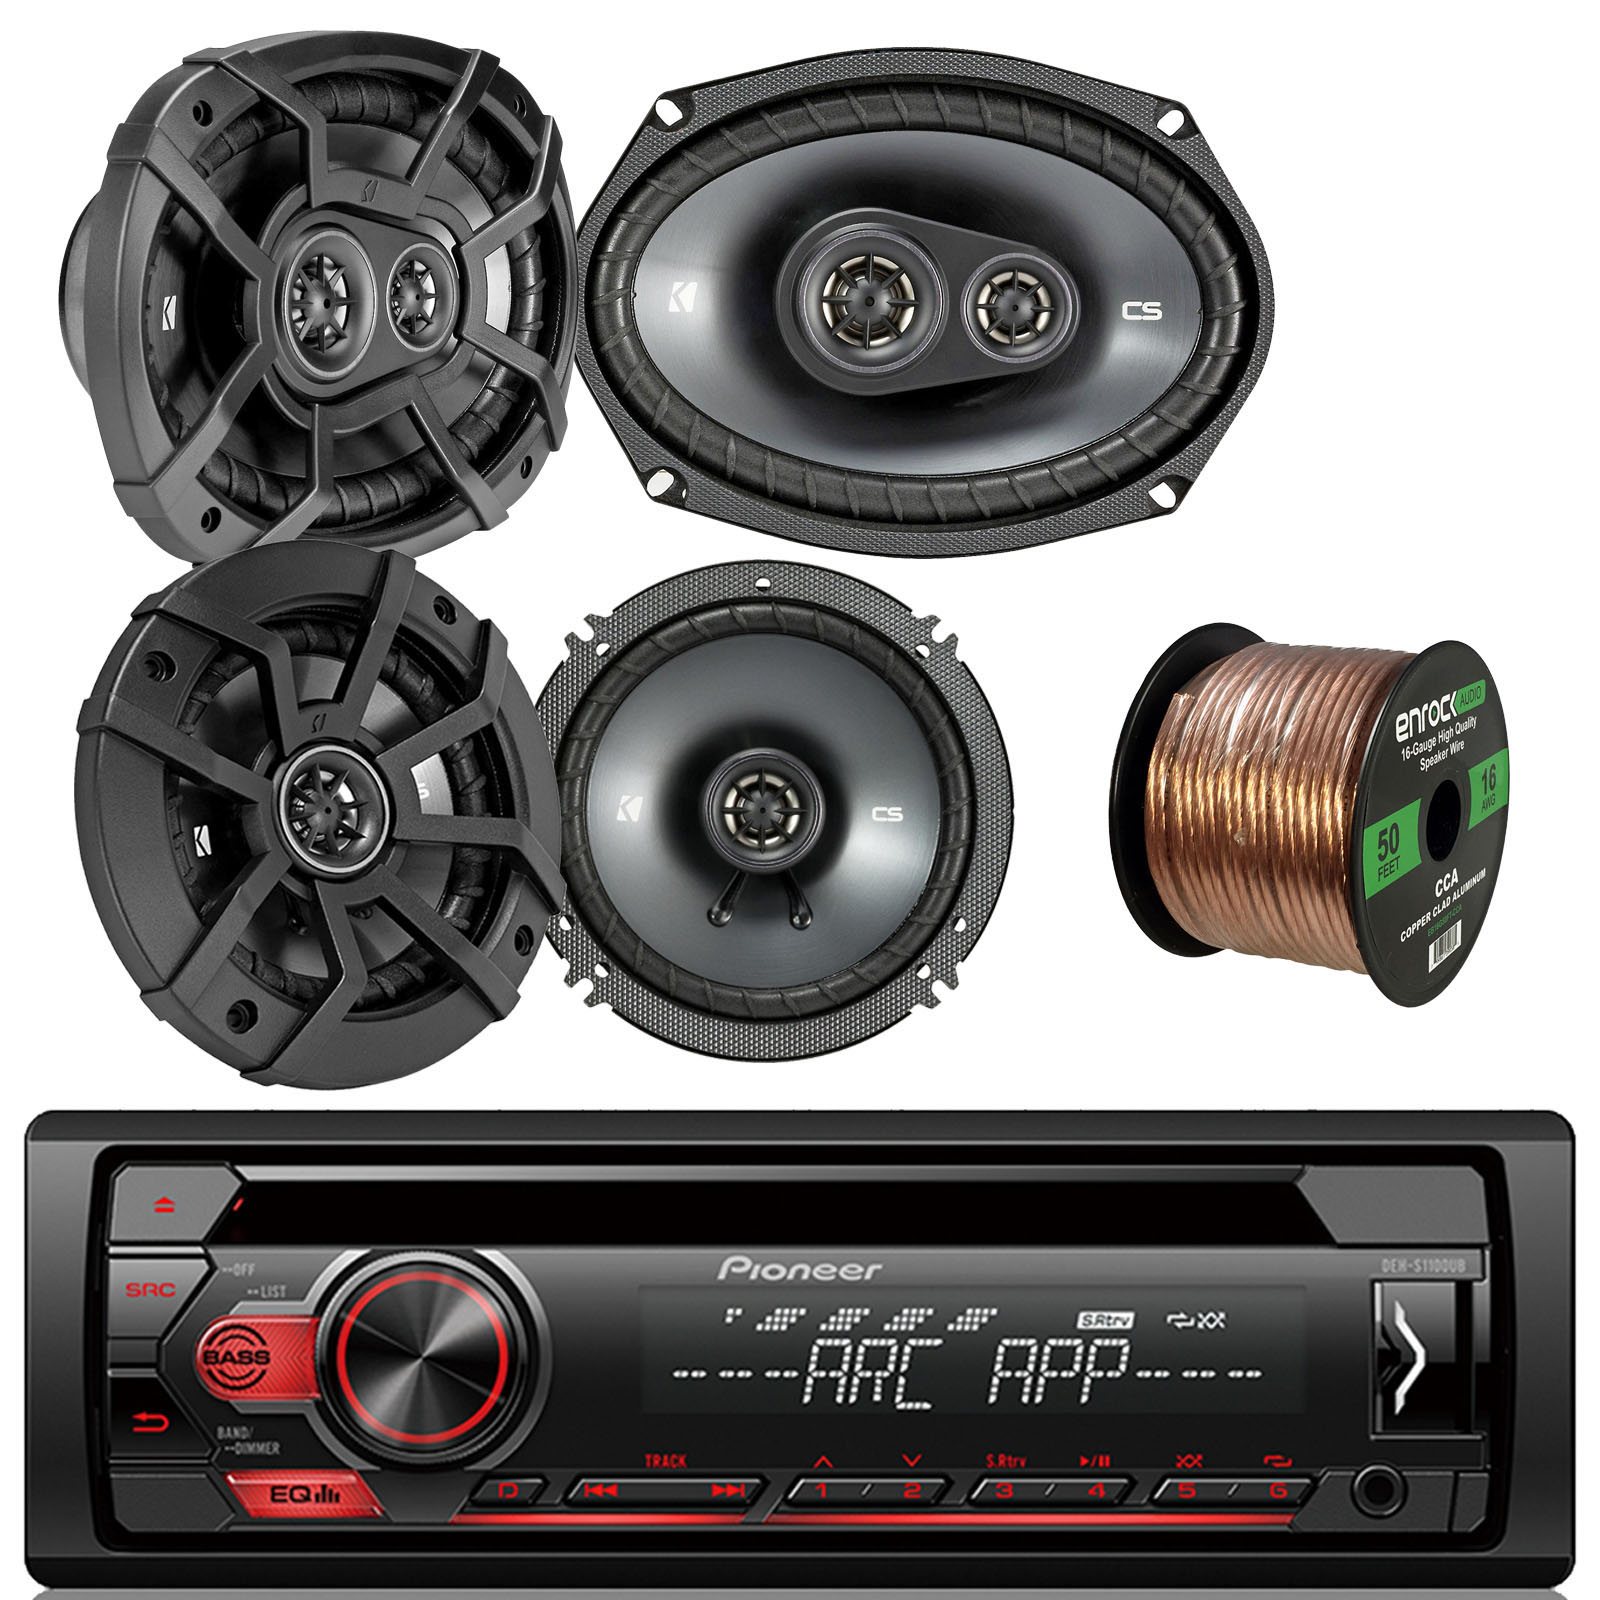 "Pioneer DEHS1100UB Single DIN Car Stereo Bundle - Kicker Car Audio 6.5-Inch Component Speaker Set Of 2 Bundle + Kicker 6x9"" 2-Way Car Speaker Set Of 2 - Enrock 50Ft Speaker Wire"